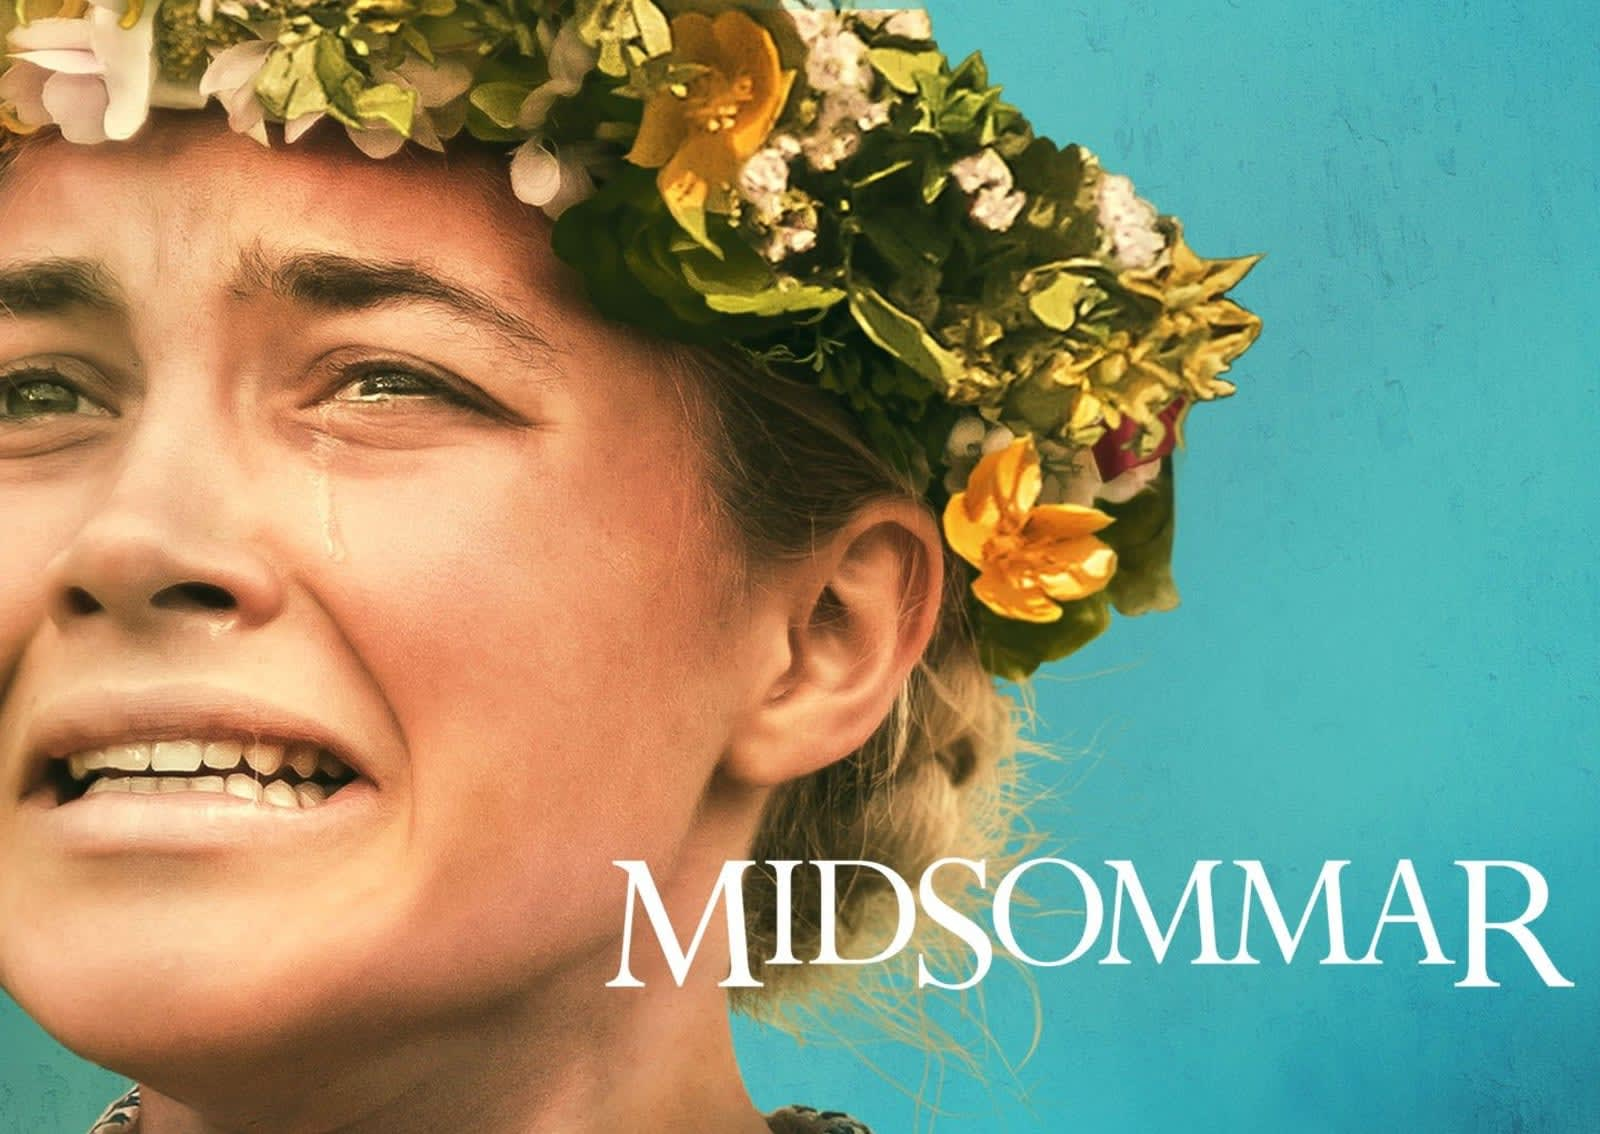 Midsommar' director's cut will be an Apple TV exclusive